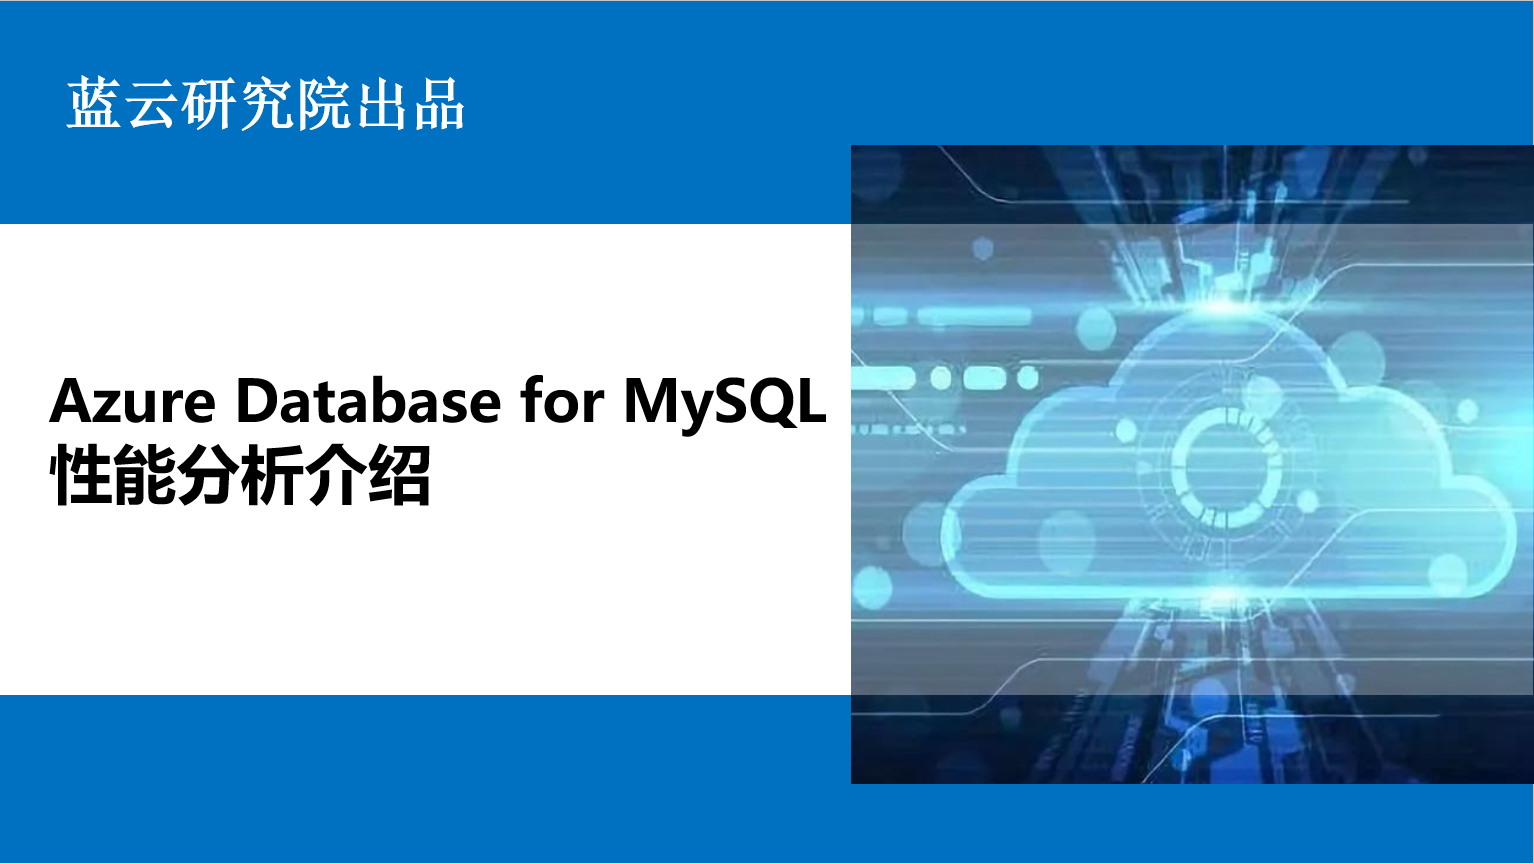 Azure Database for MySQL性能分析介绍